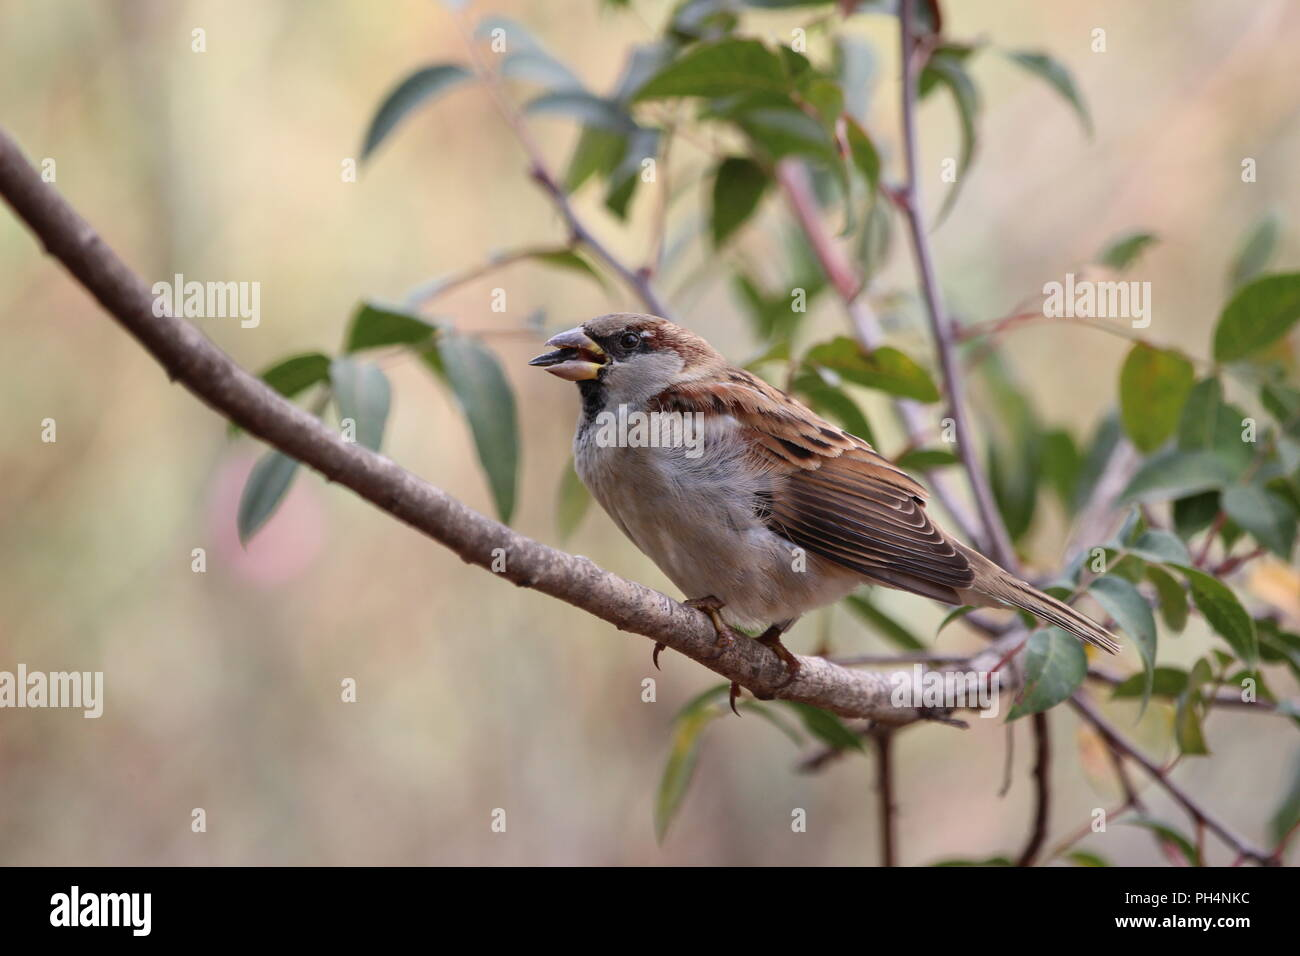 A sparrow on a branch, cracking cores - Stock Image